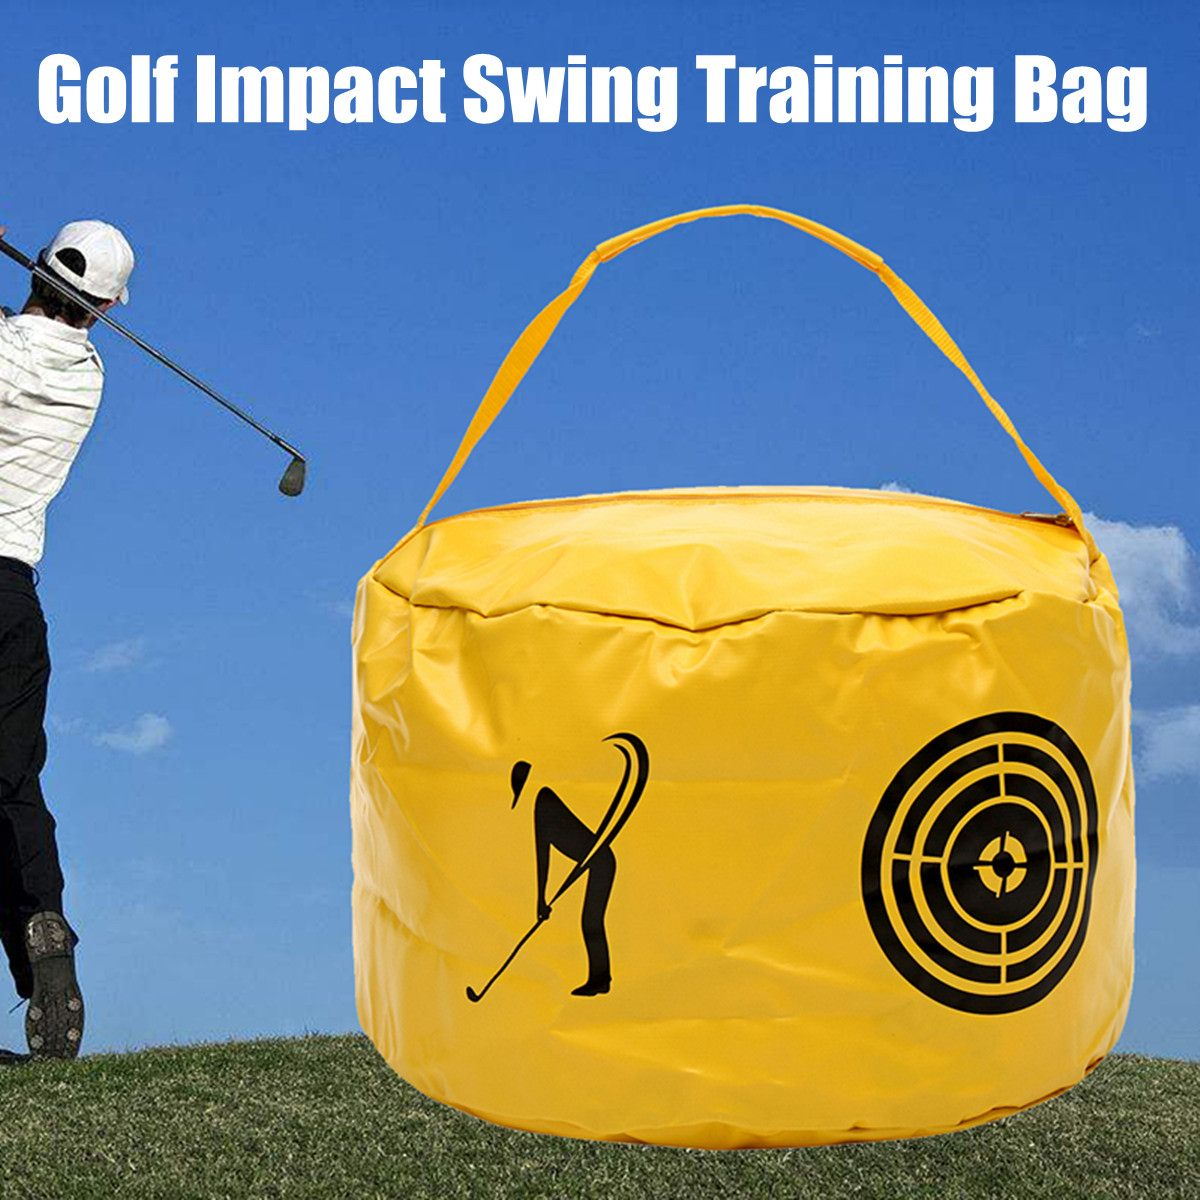 Golf Power Impact Swing Bag Beginner Trainer Exercise Package Multifunctional Golf Training Aids Practice Smash Hit Bag Goods